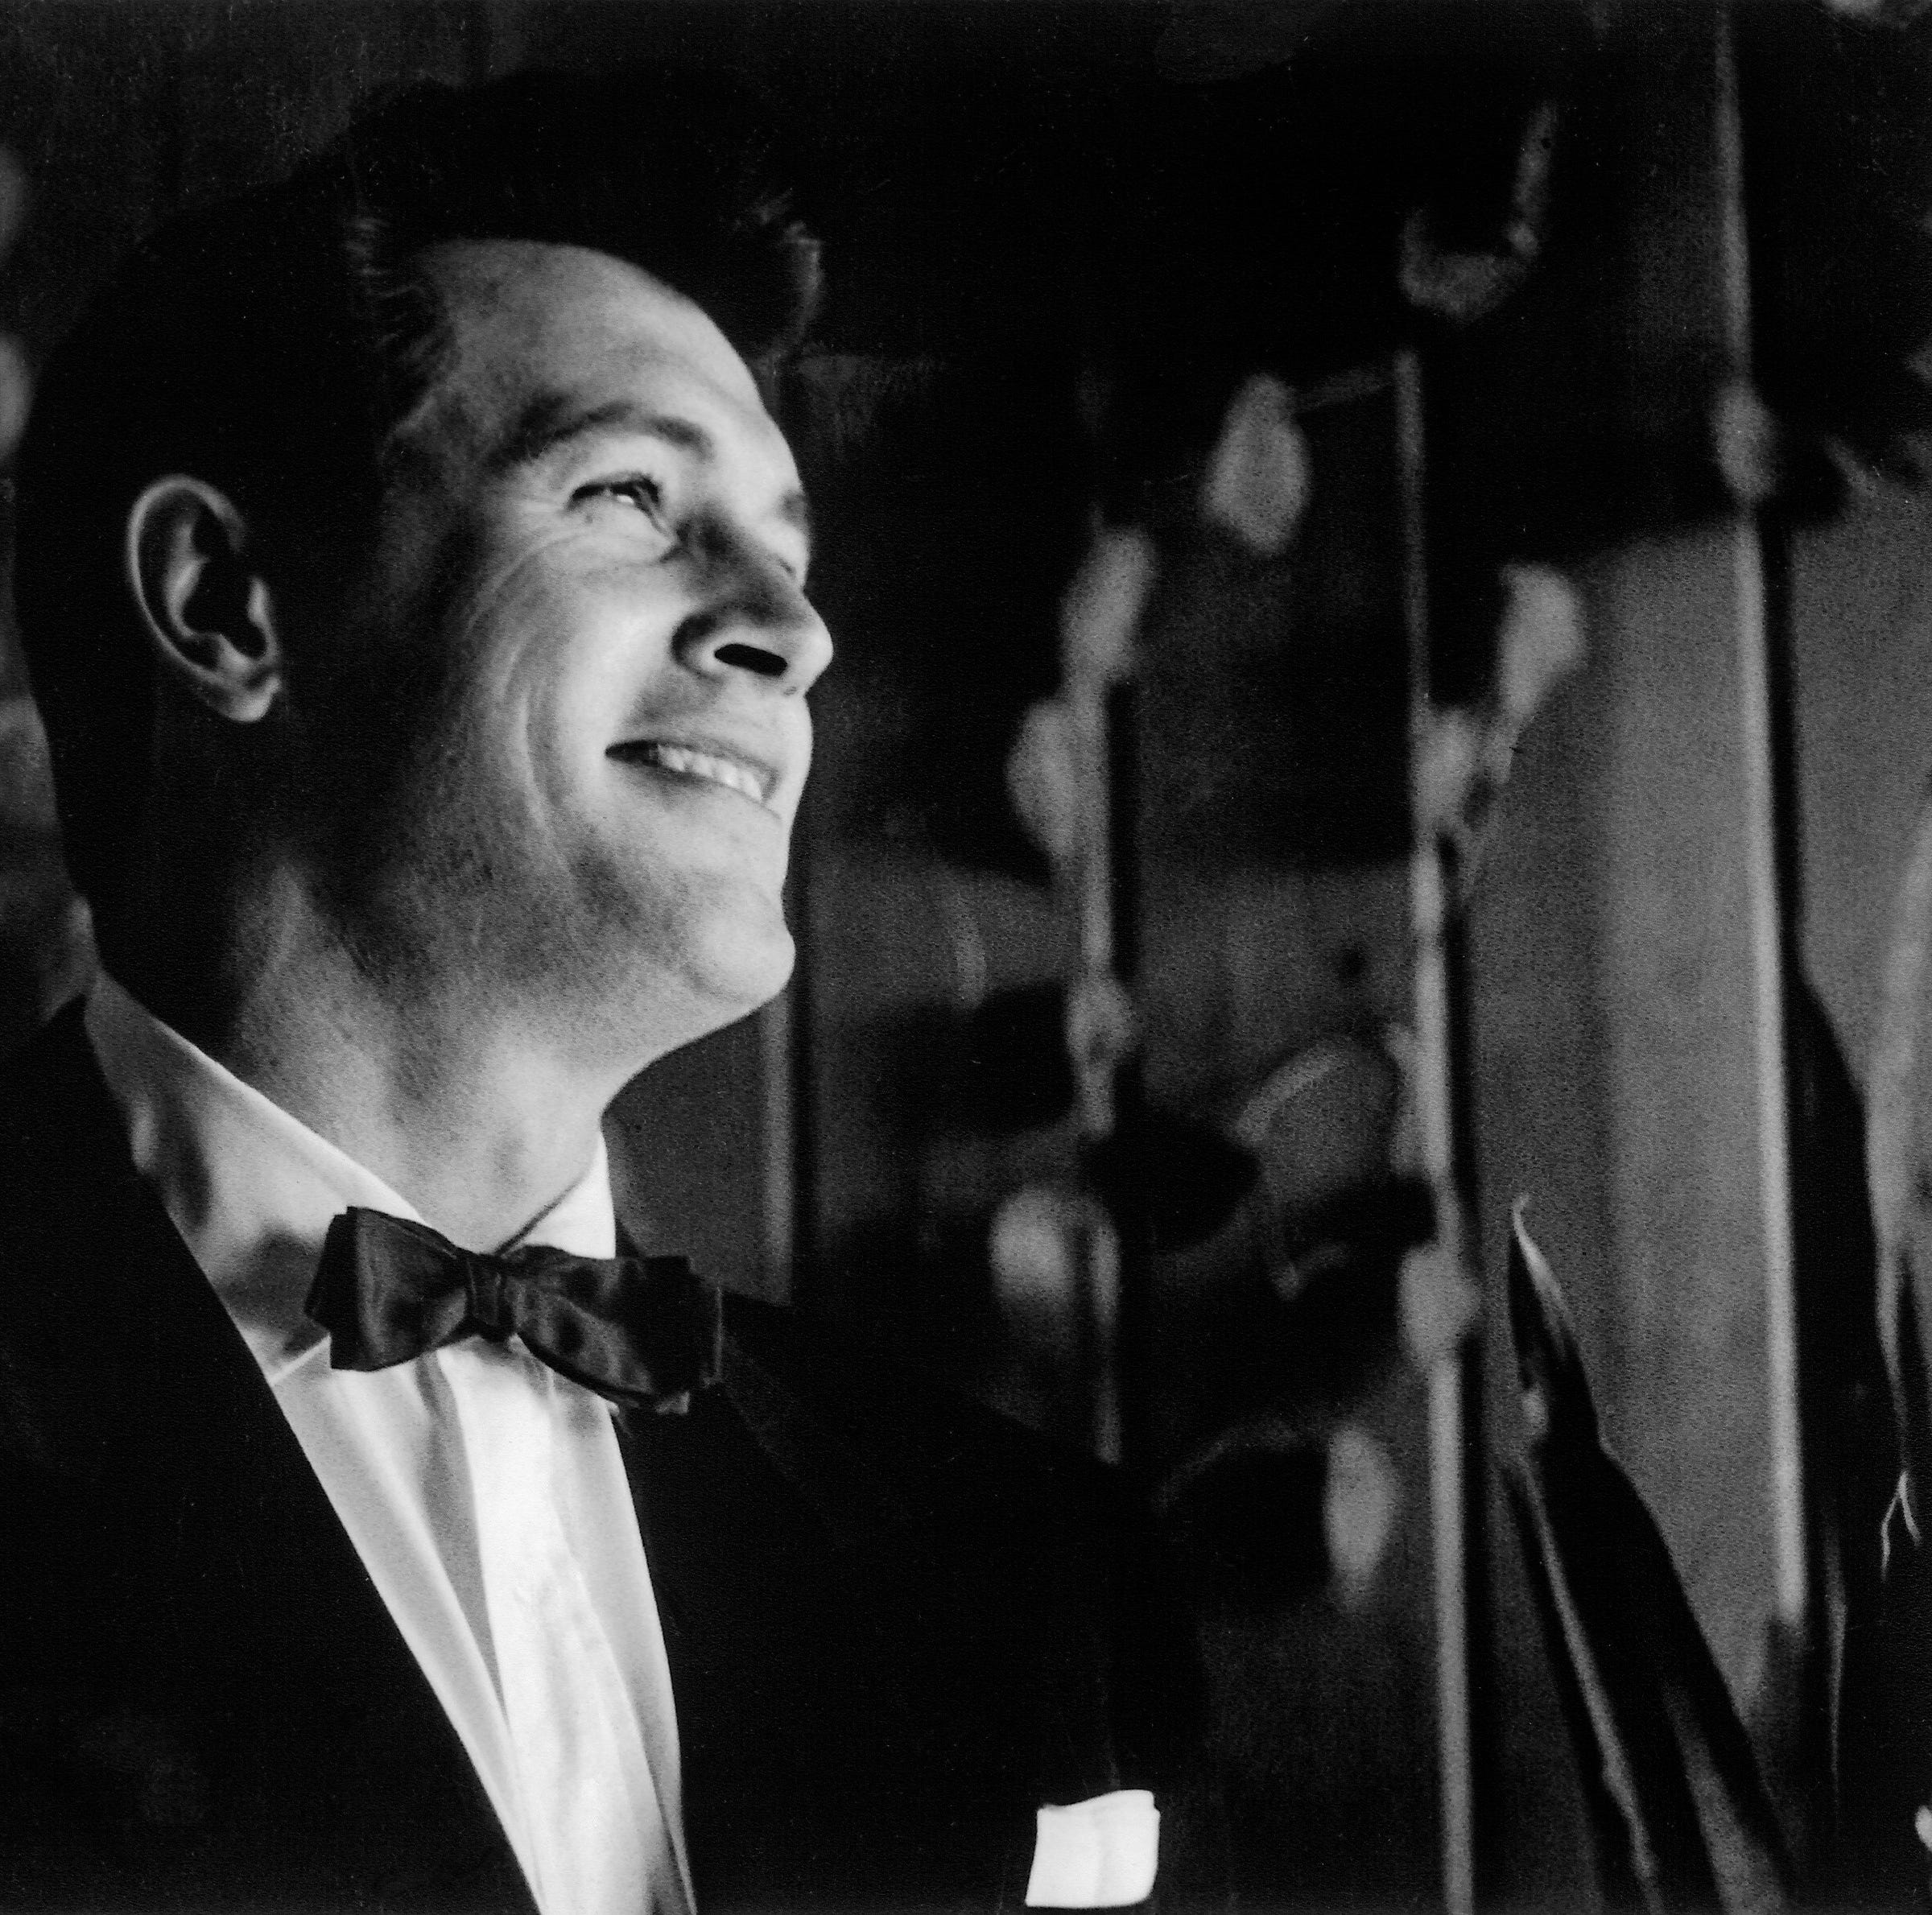 Rock Hudson retreated to desert to escape 'glare' of Hollywood, but never opened up about his sexuality